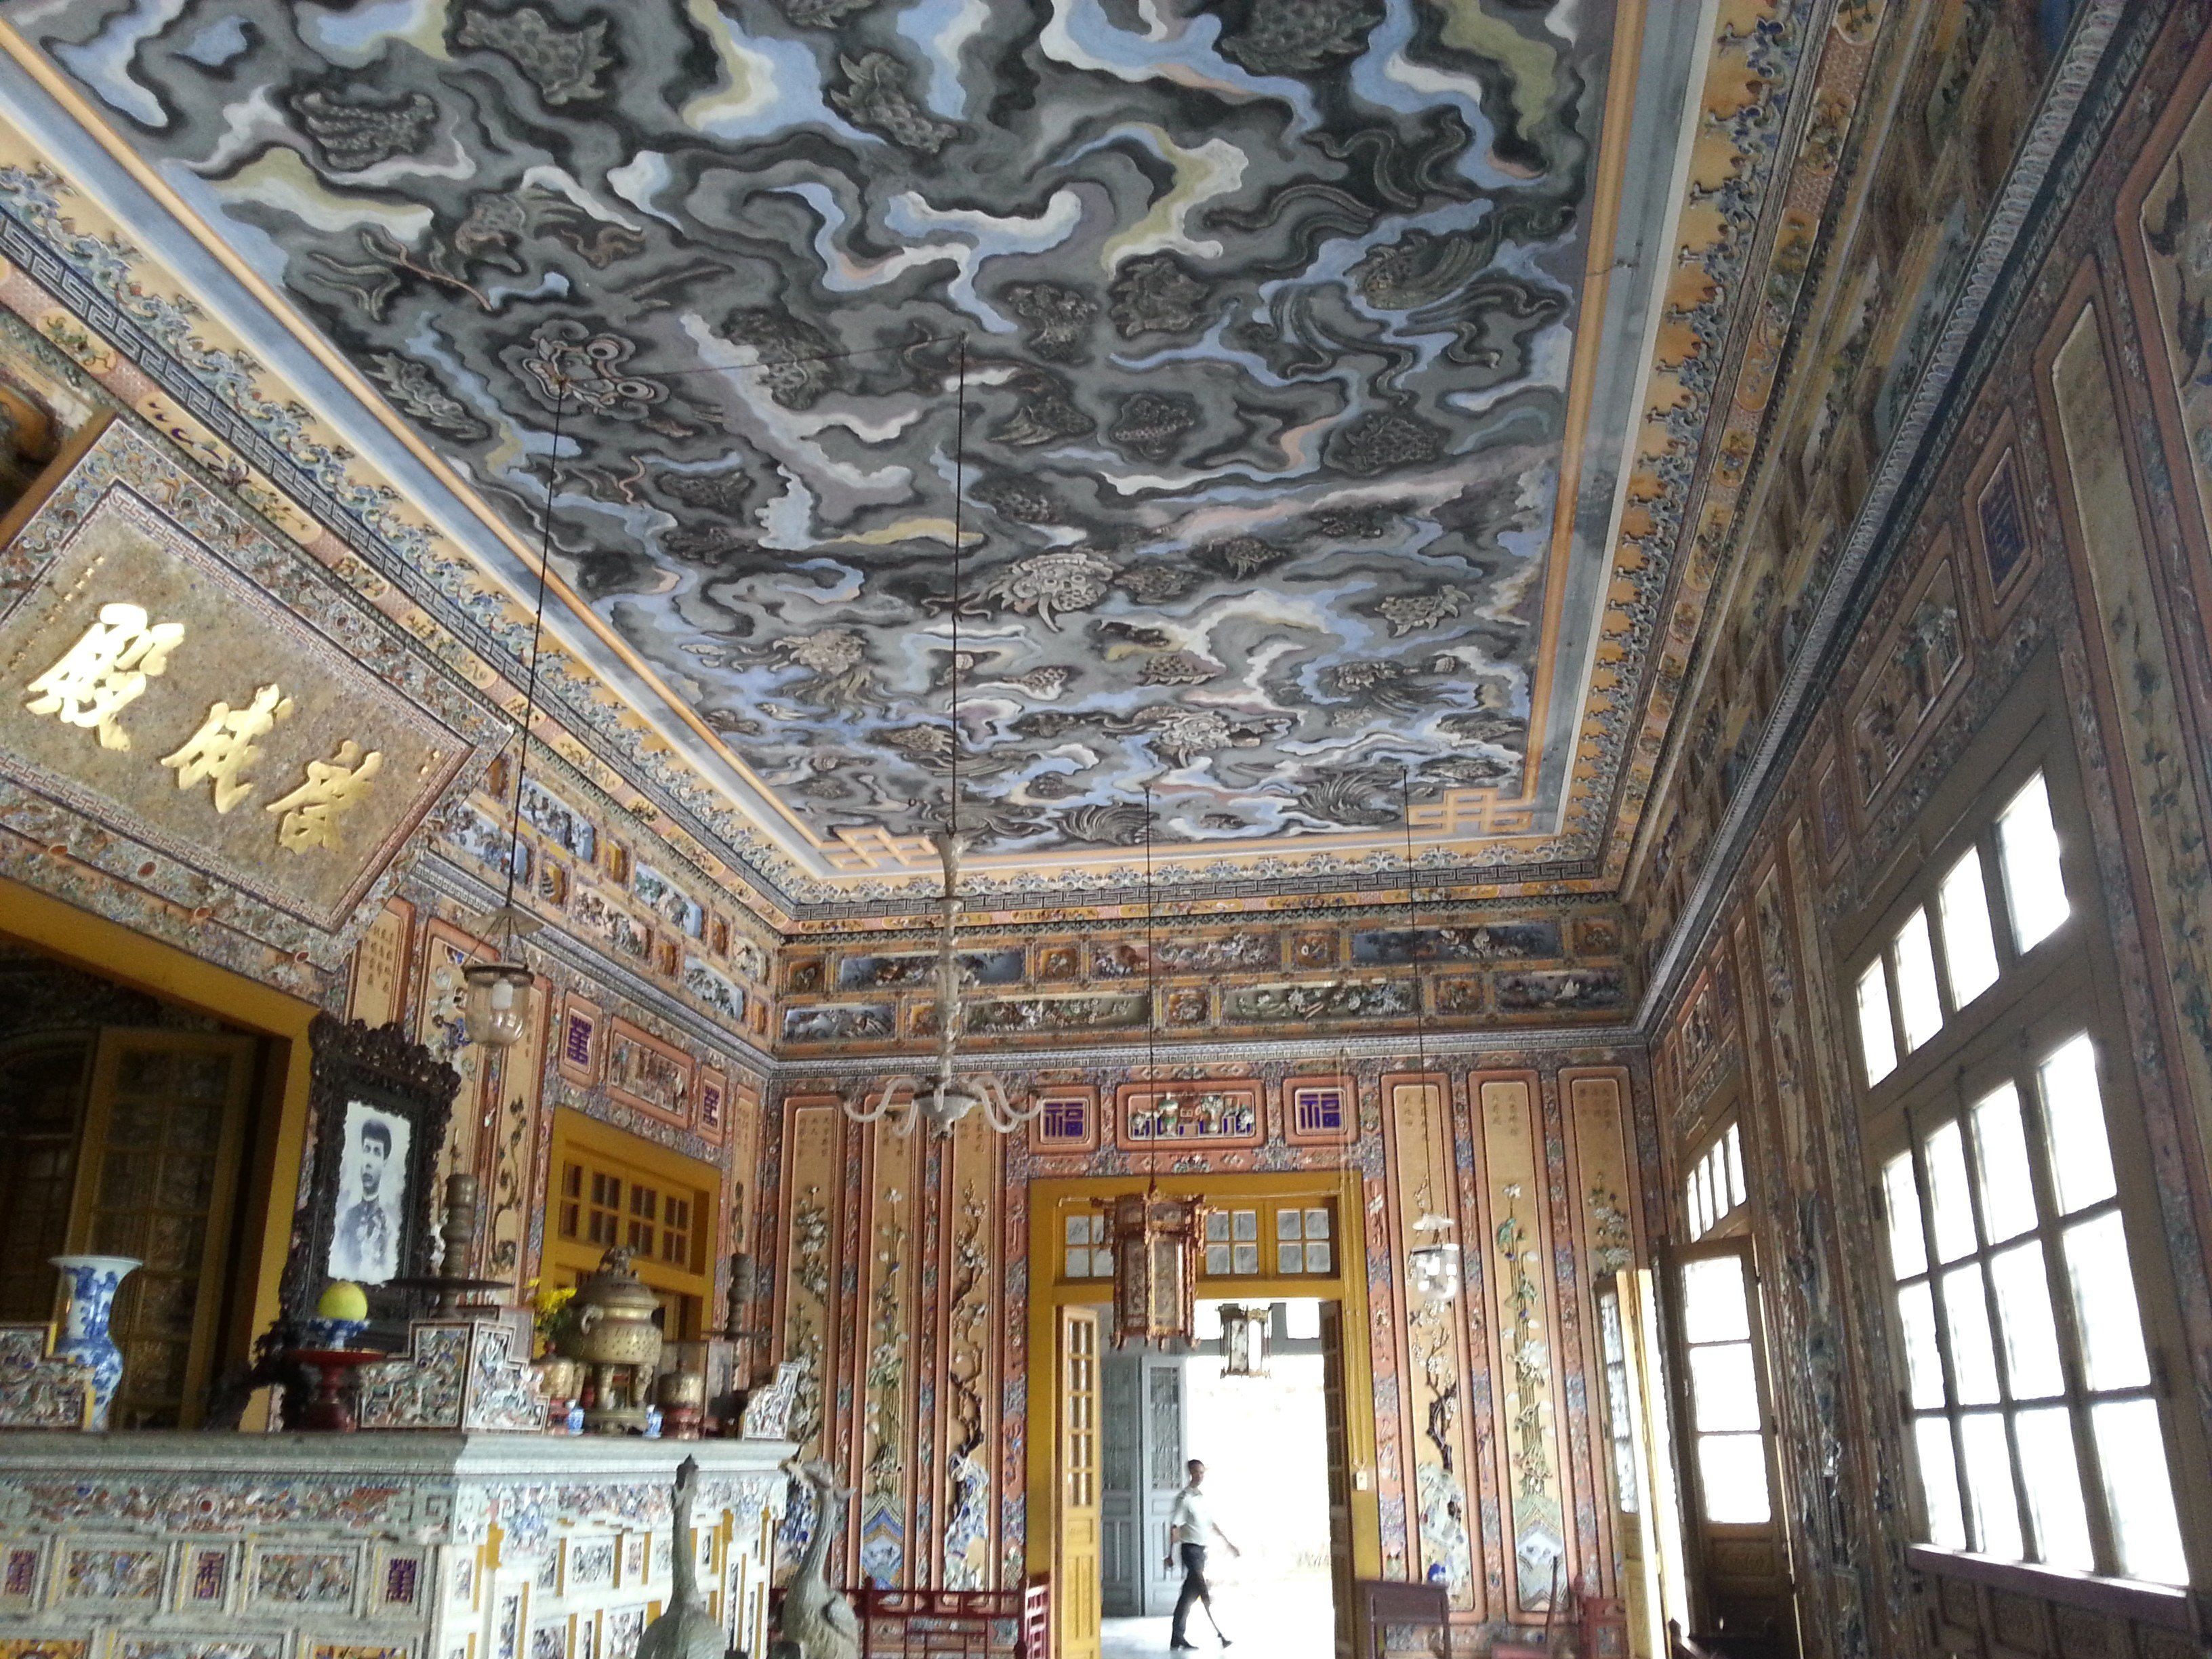 Baroque style interior of the Thien Dinh Palace